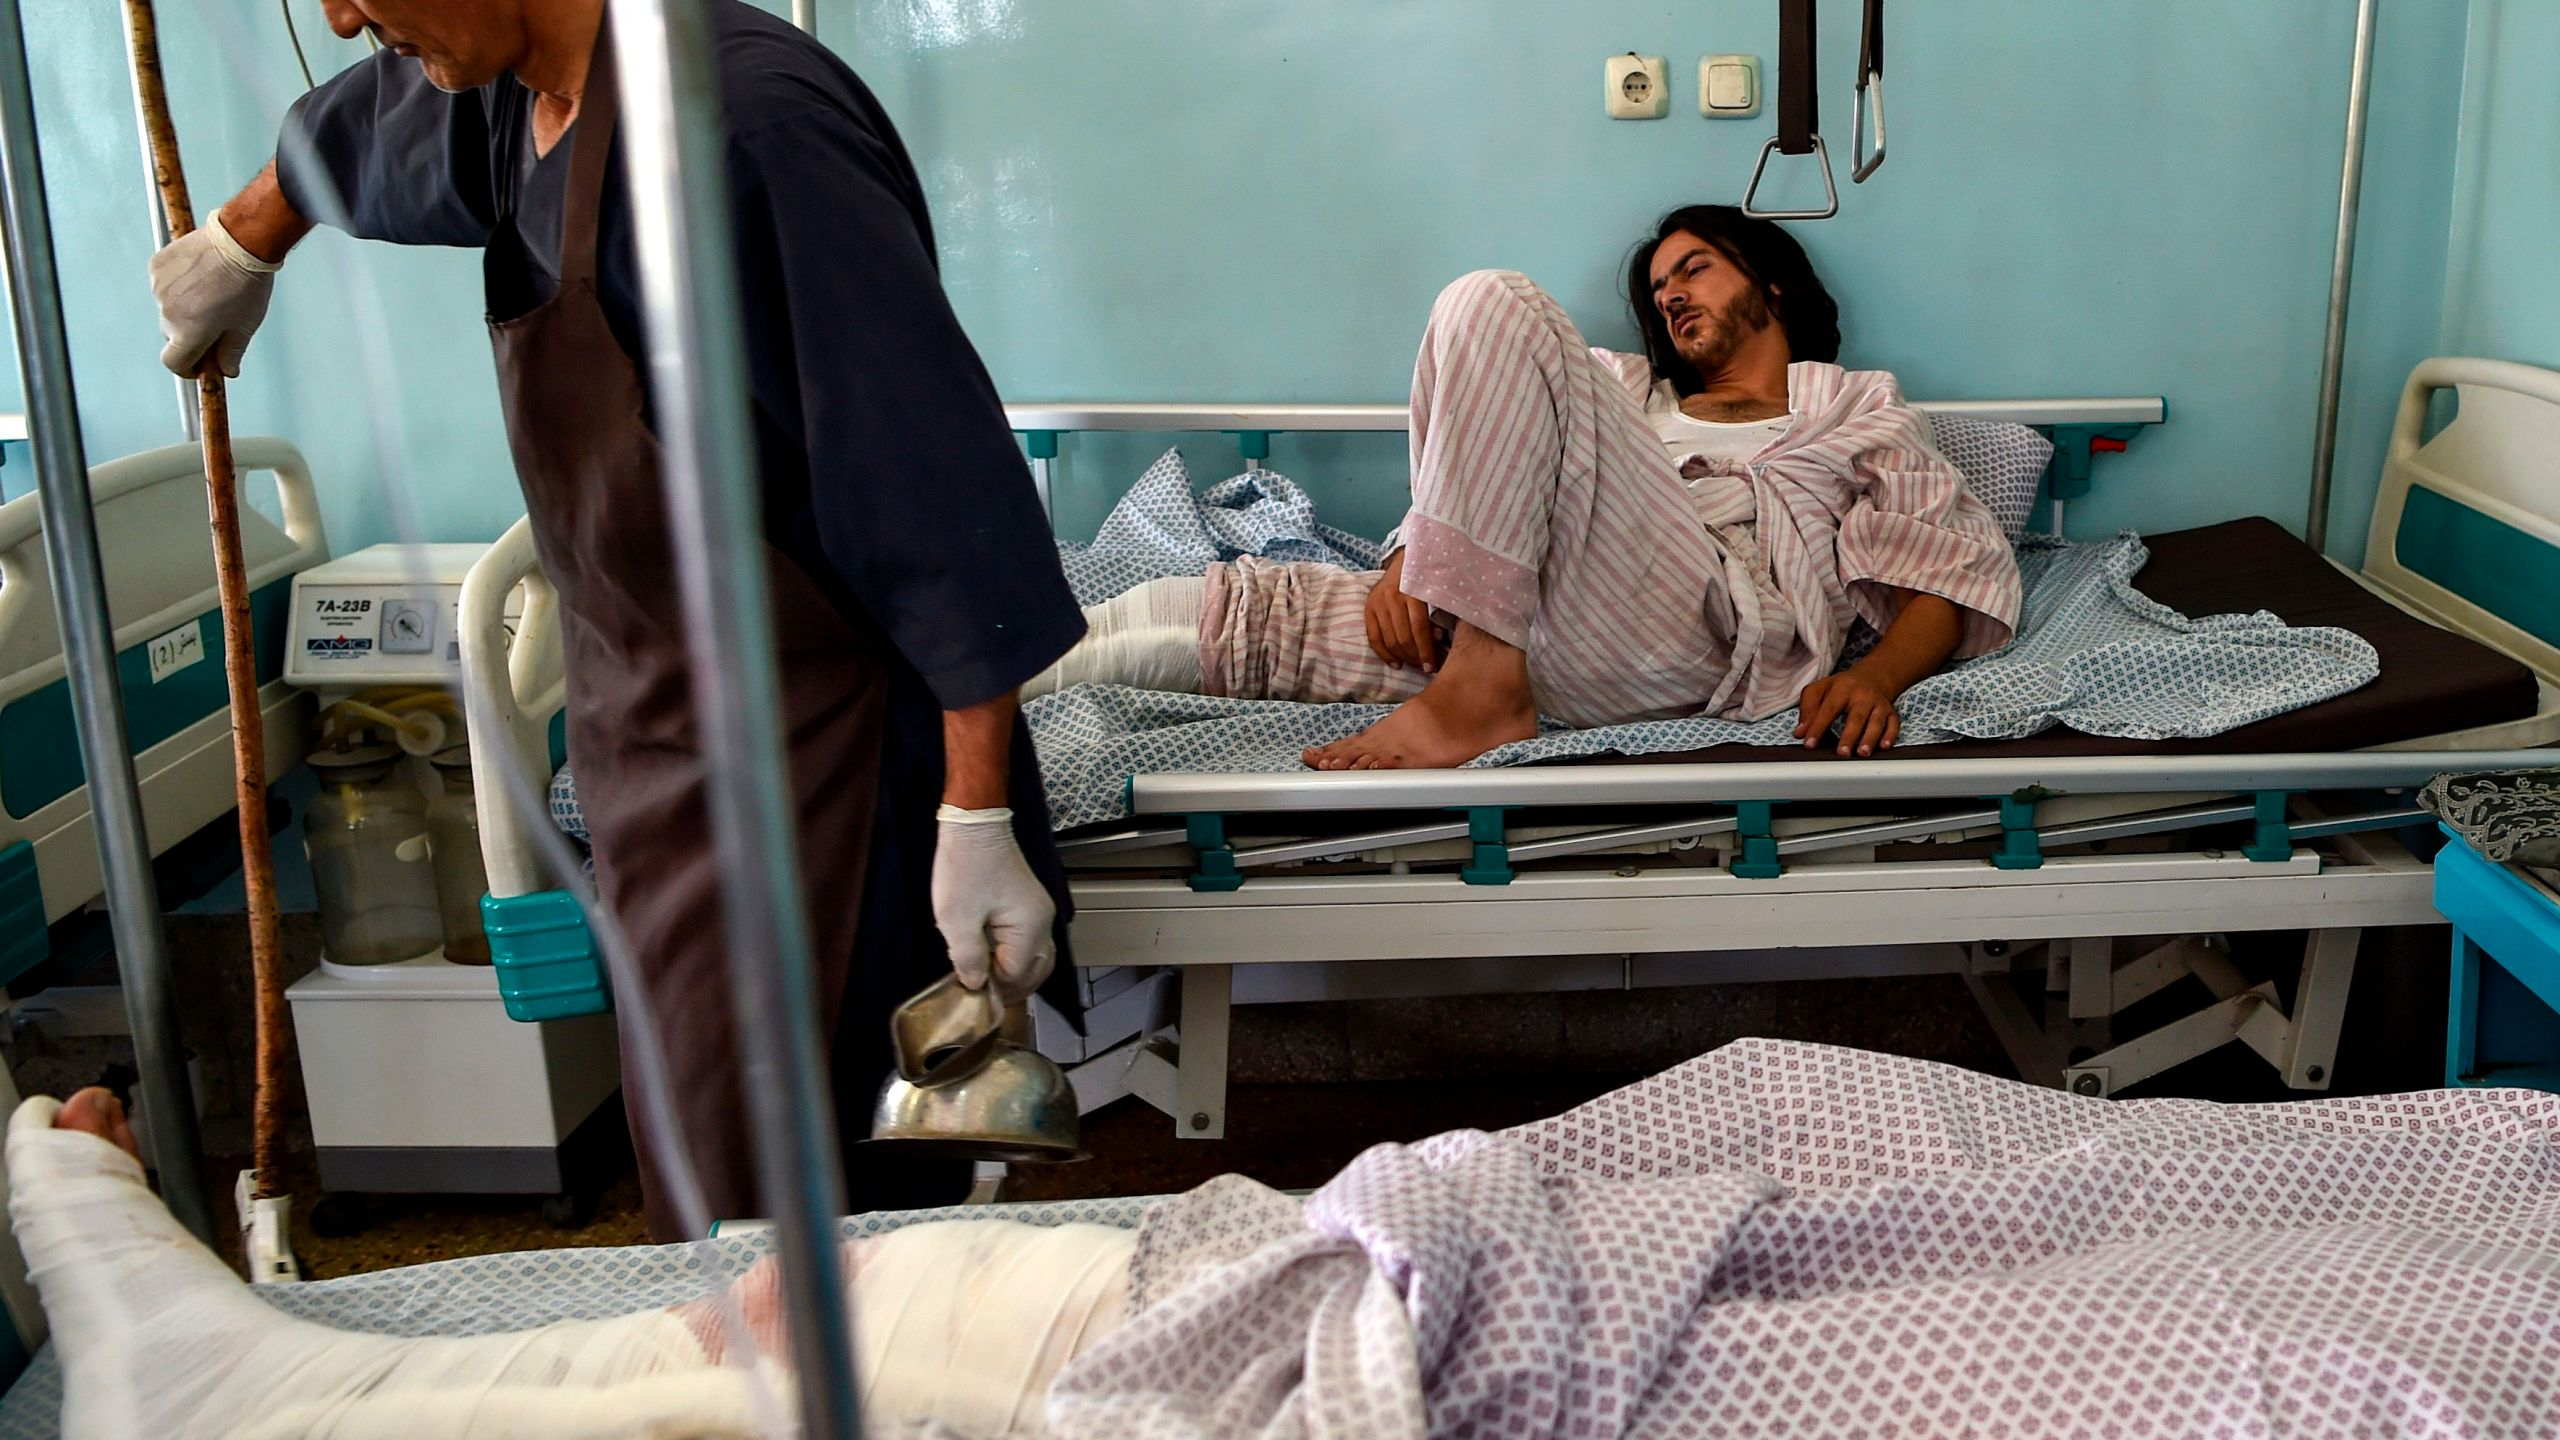 Wounded men receive treatment at the Wazir Akbar Khan hospital after a deadly bomb blast in a wedding hall in Kabul on Aug. 18, 2019. (Credit: WAKIL KOHSAR/AFP/Getty Images)